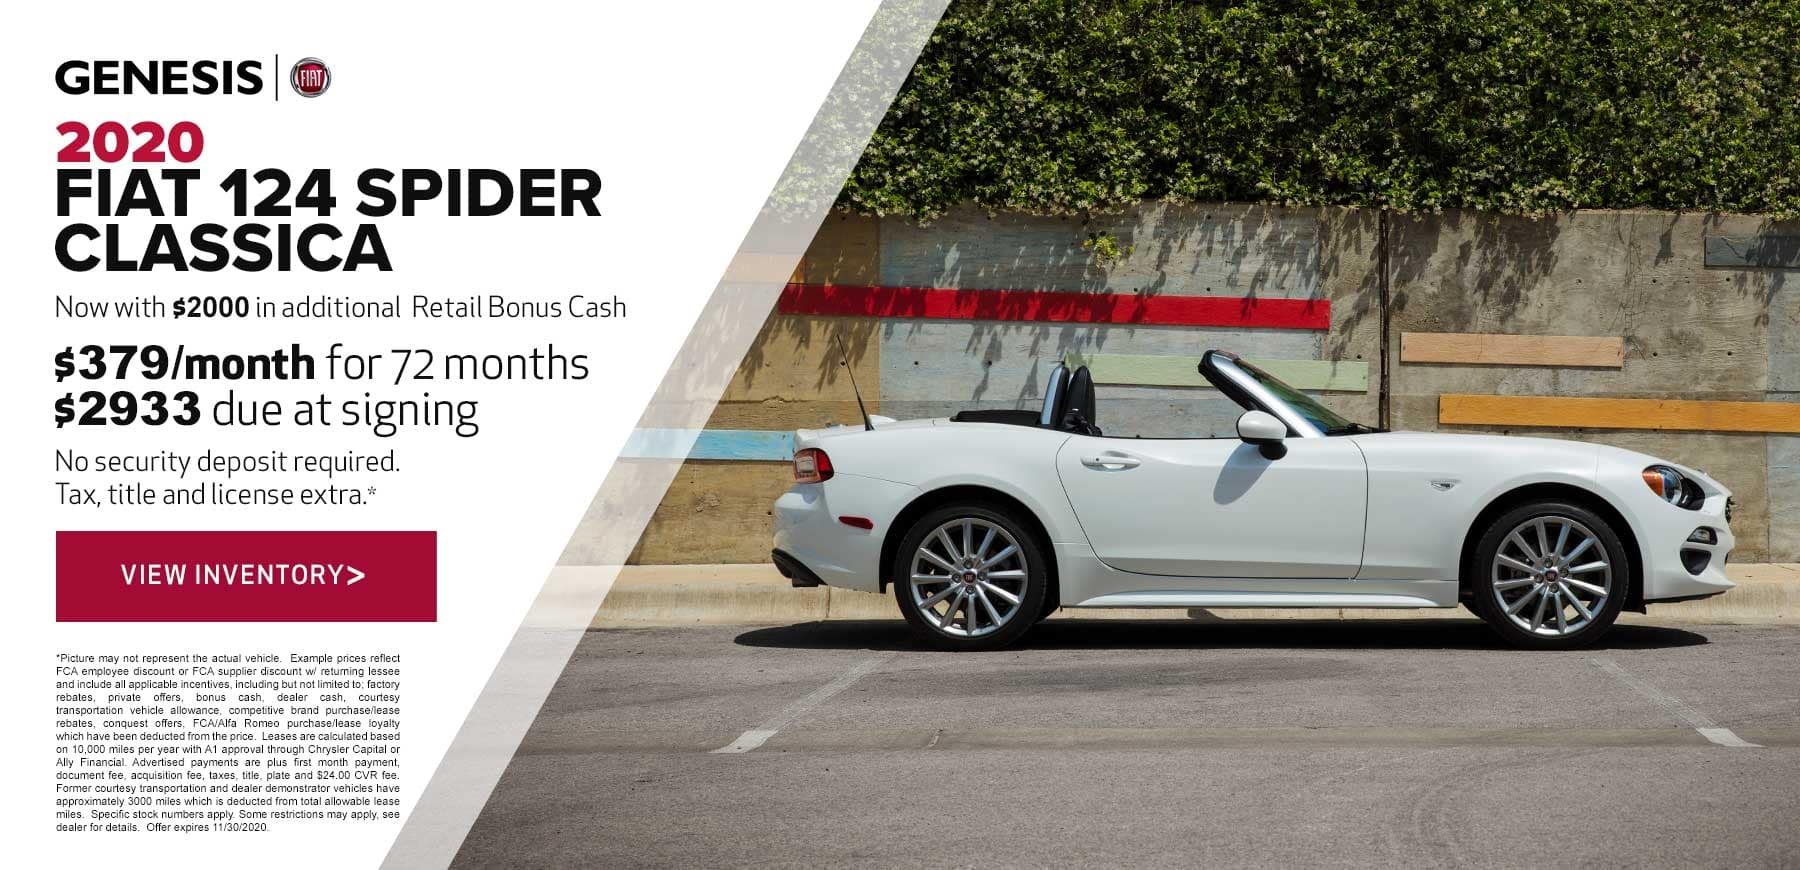 Genesis FIAT 124 Spider Classica November 2020 Purchase Offer